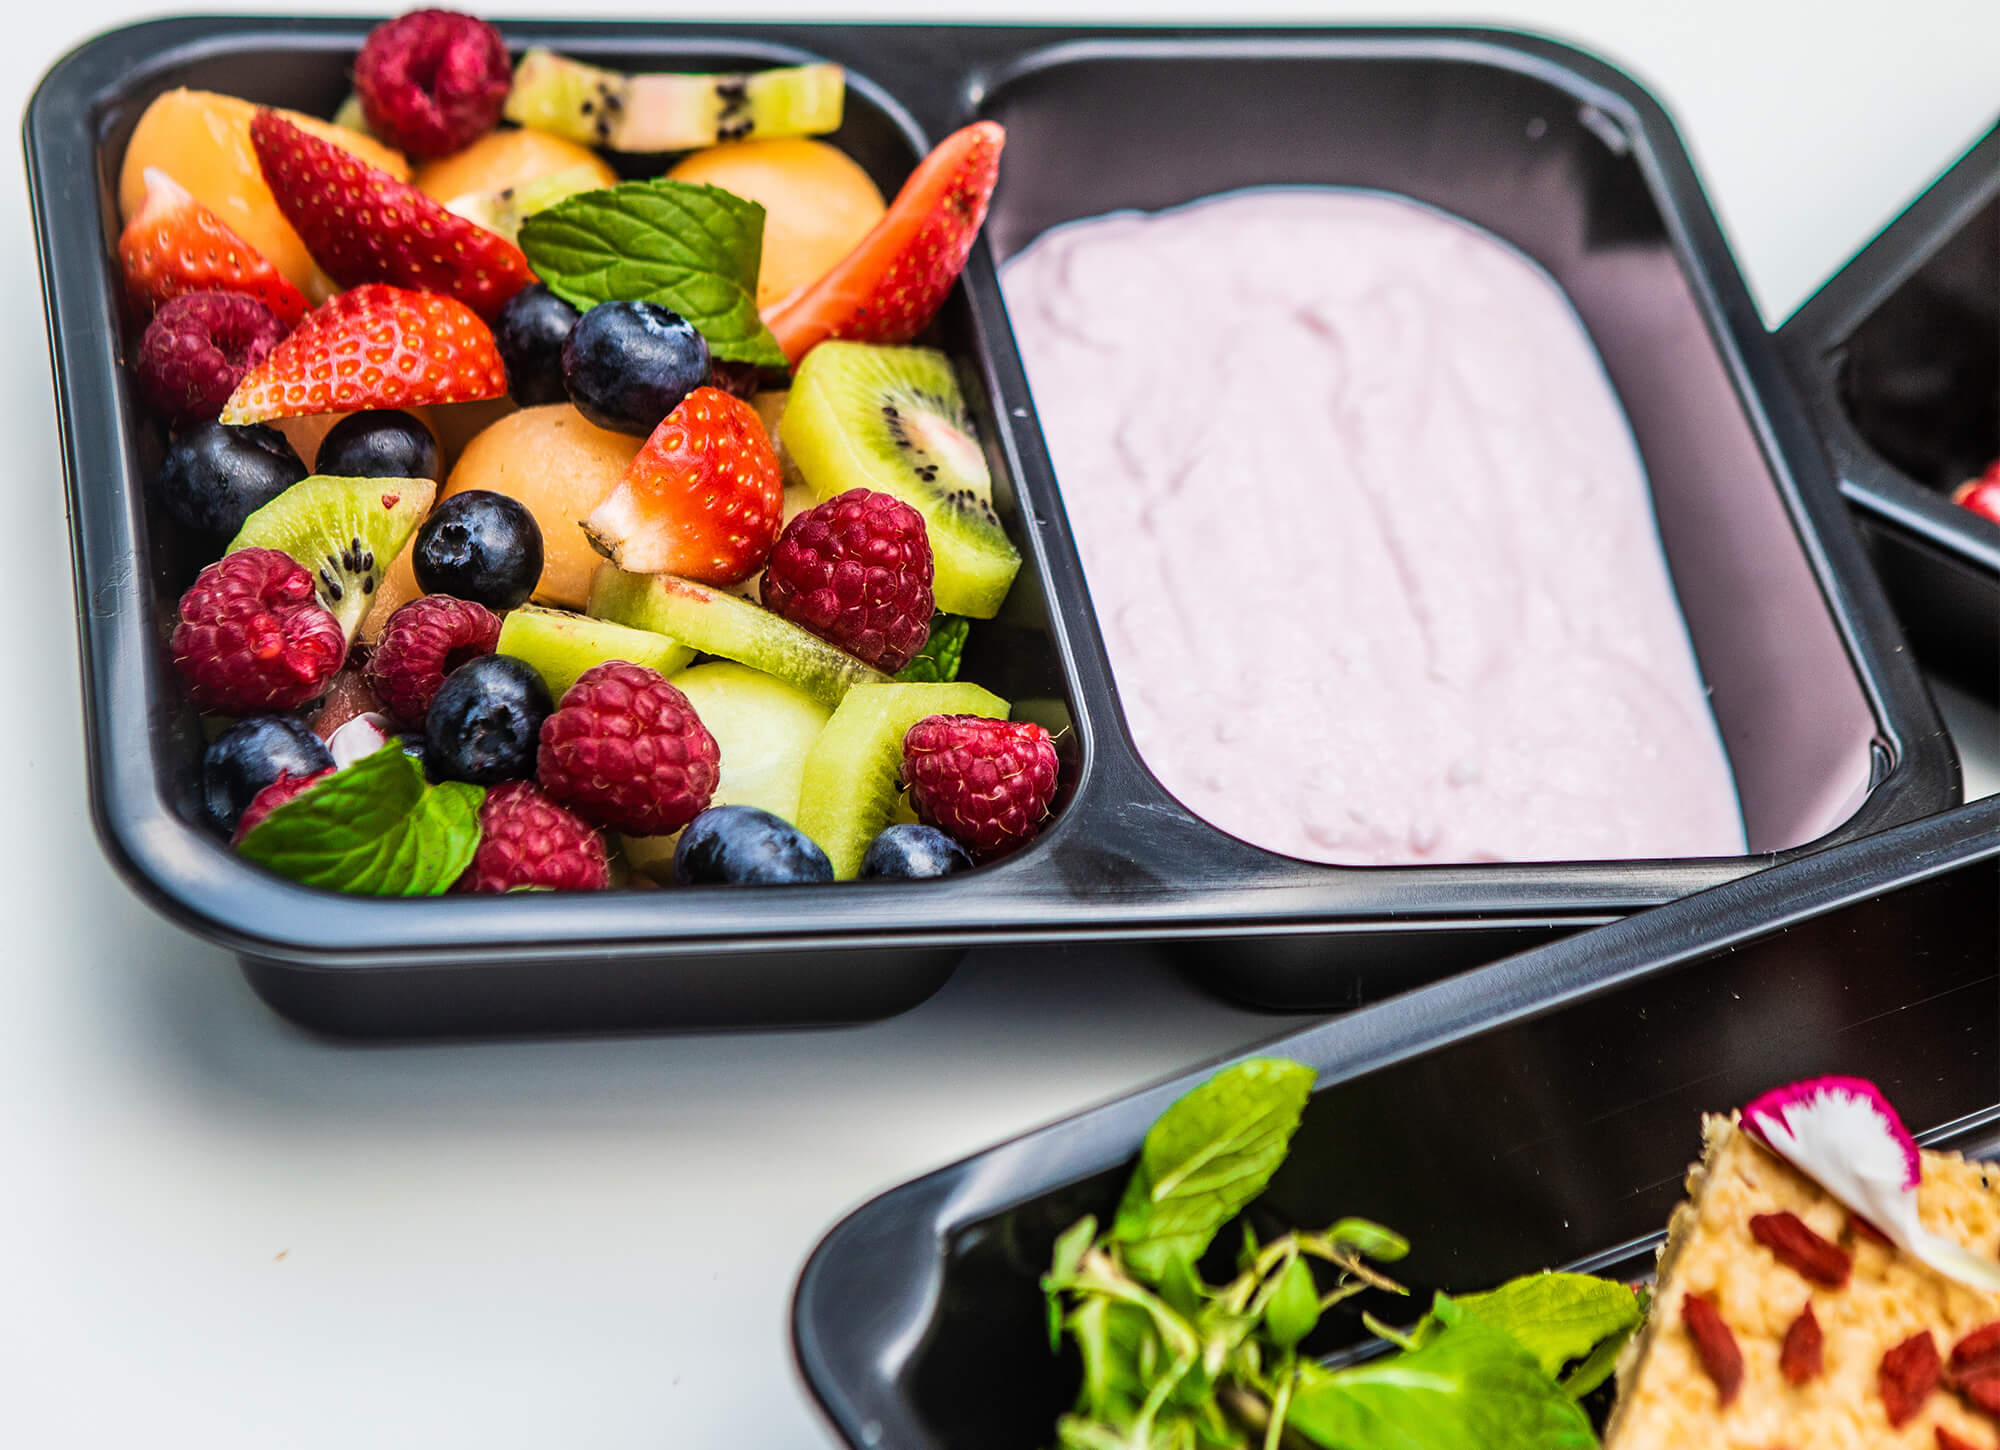 Fitnesscatering Com Pl Fit Catering Dietetyczny Dieta Pudelkowa Z